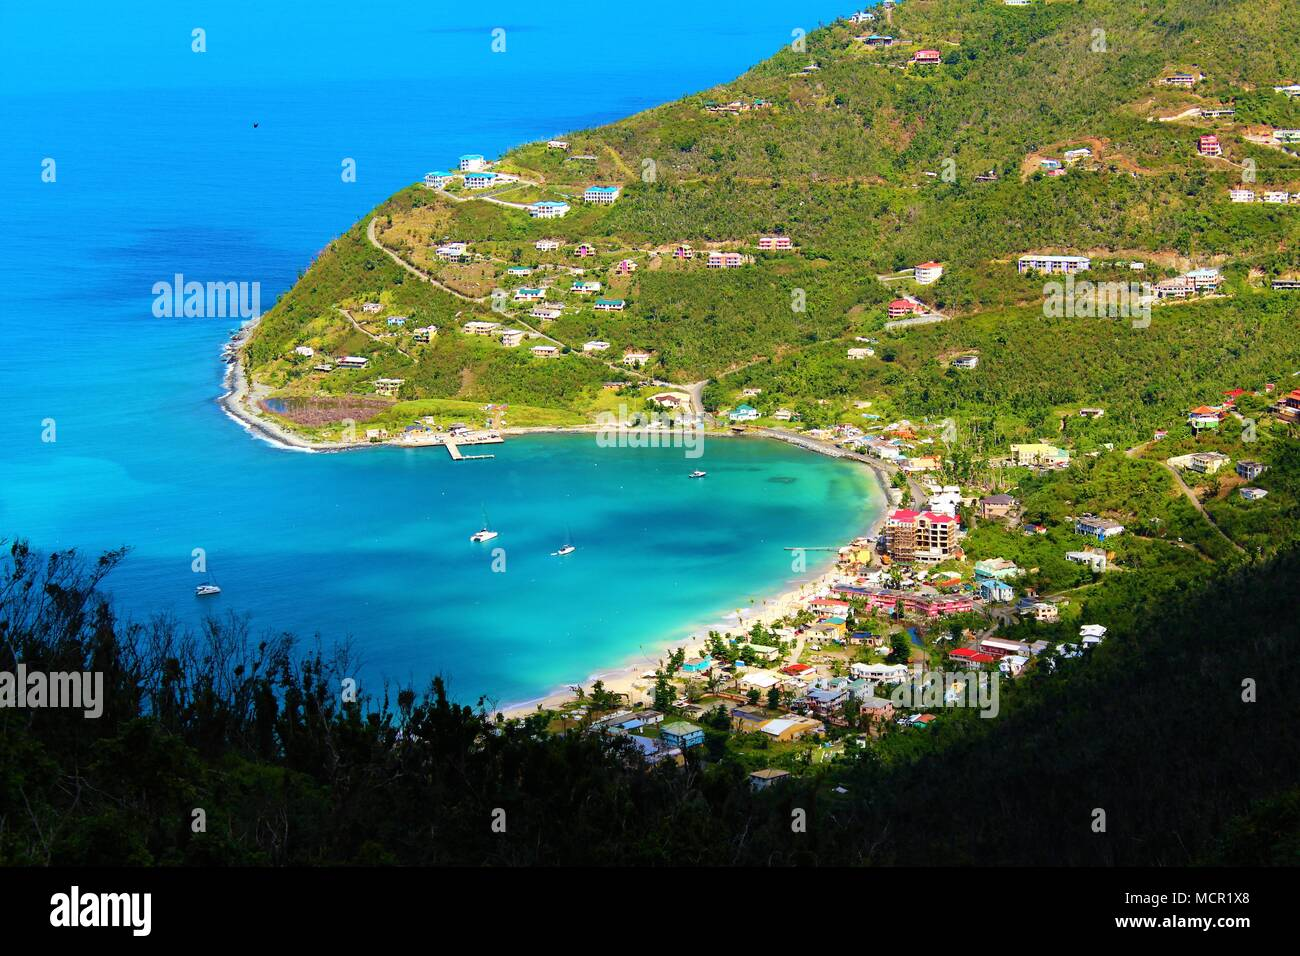 A view from high up on the island of Tortola, British Virgin Islands, onto a bay and coastal village below. February 28th 2018 - Stock Image